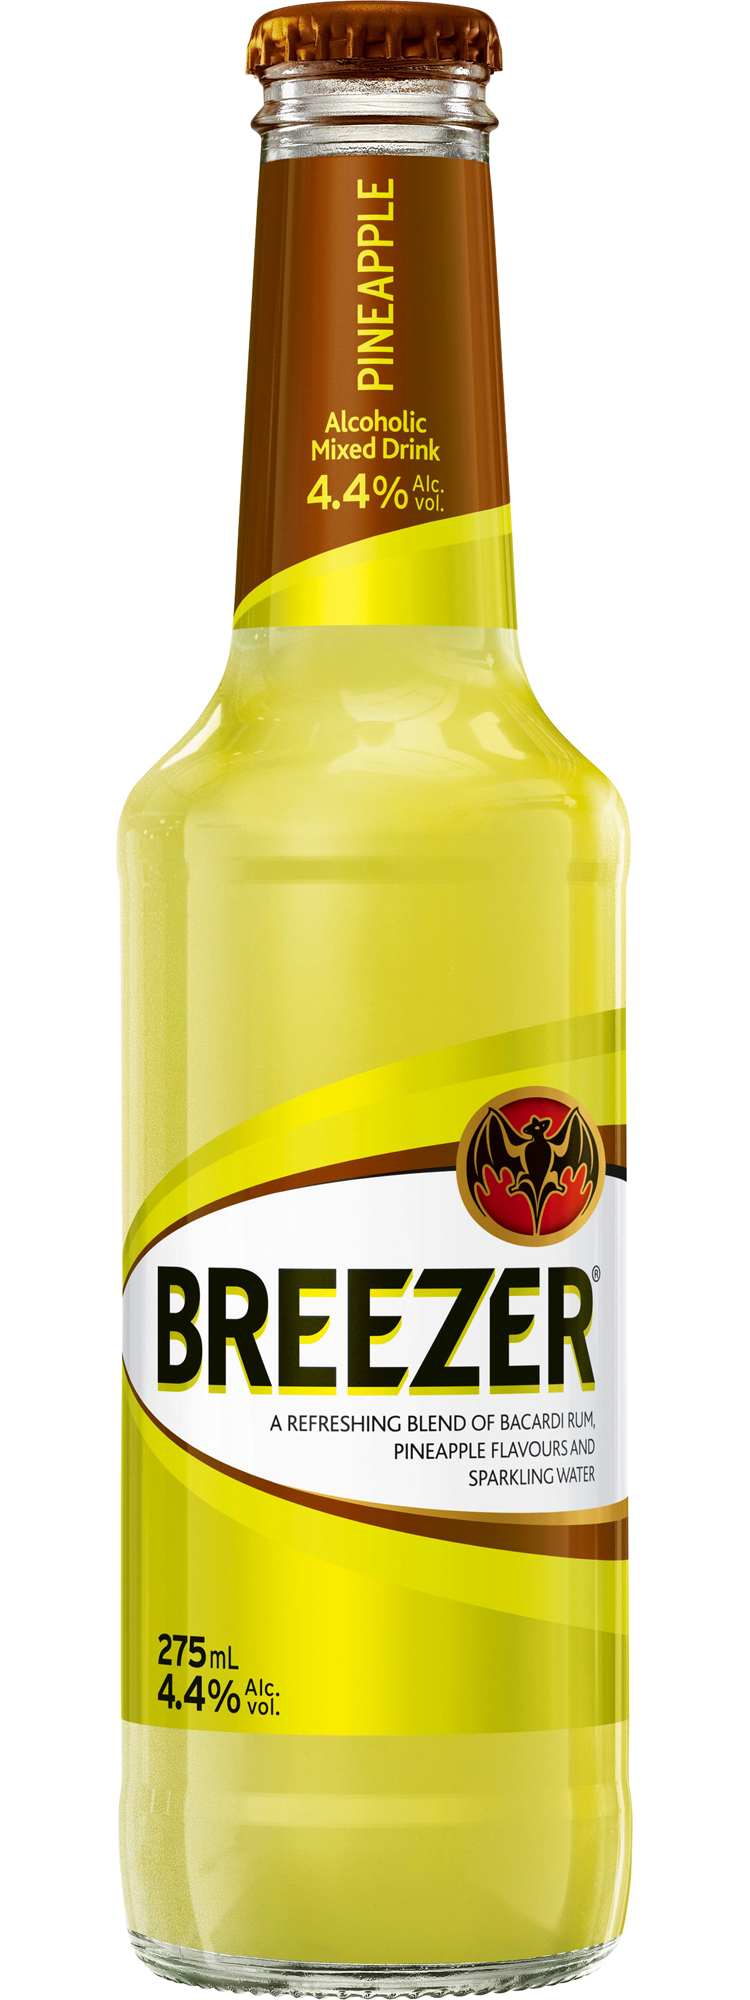 bacardi breezer Find great deals on ebay for bacardi breezer and facom shop with confidence.